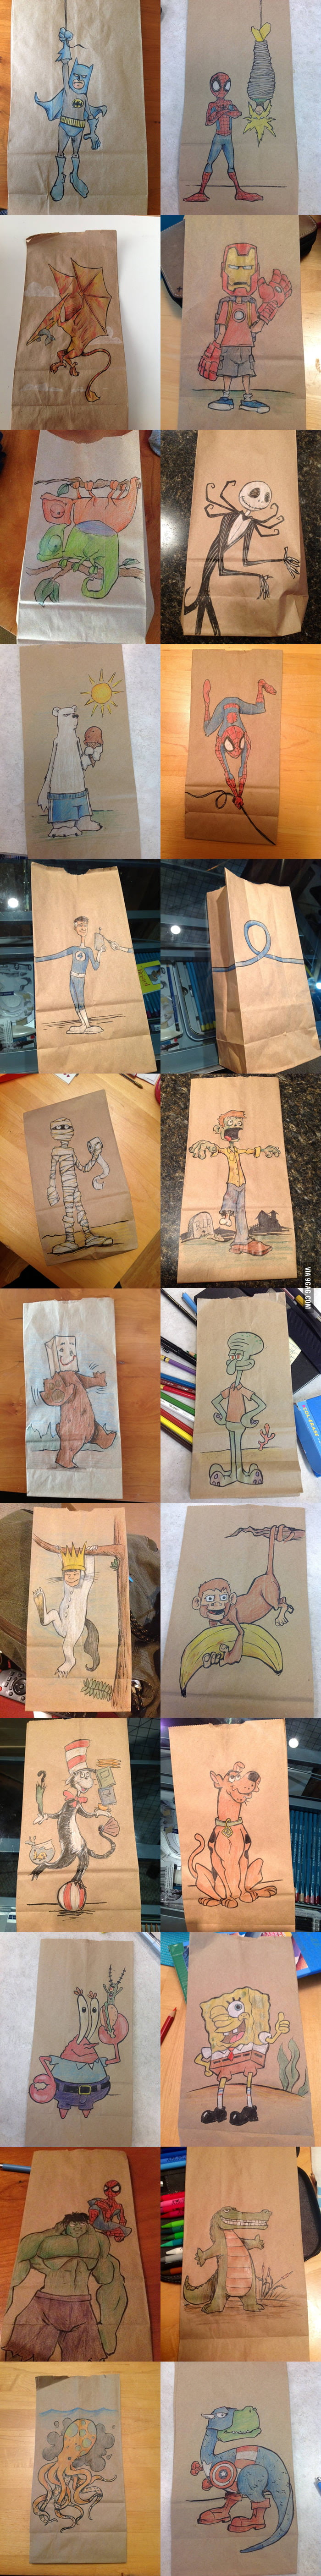 Lunch bag drawings from a father